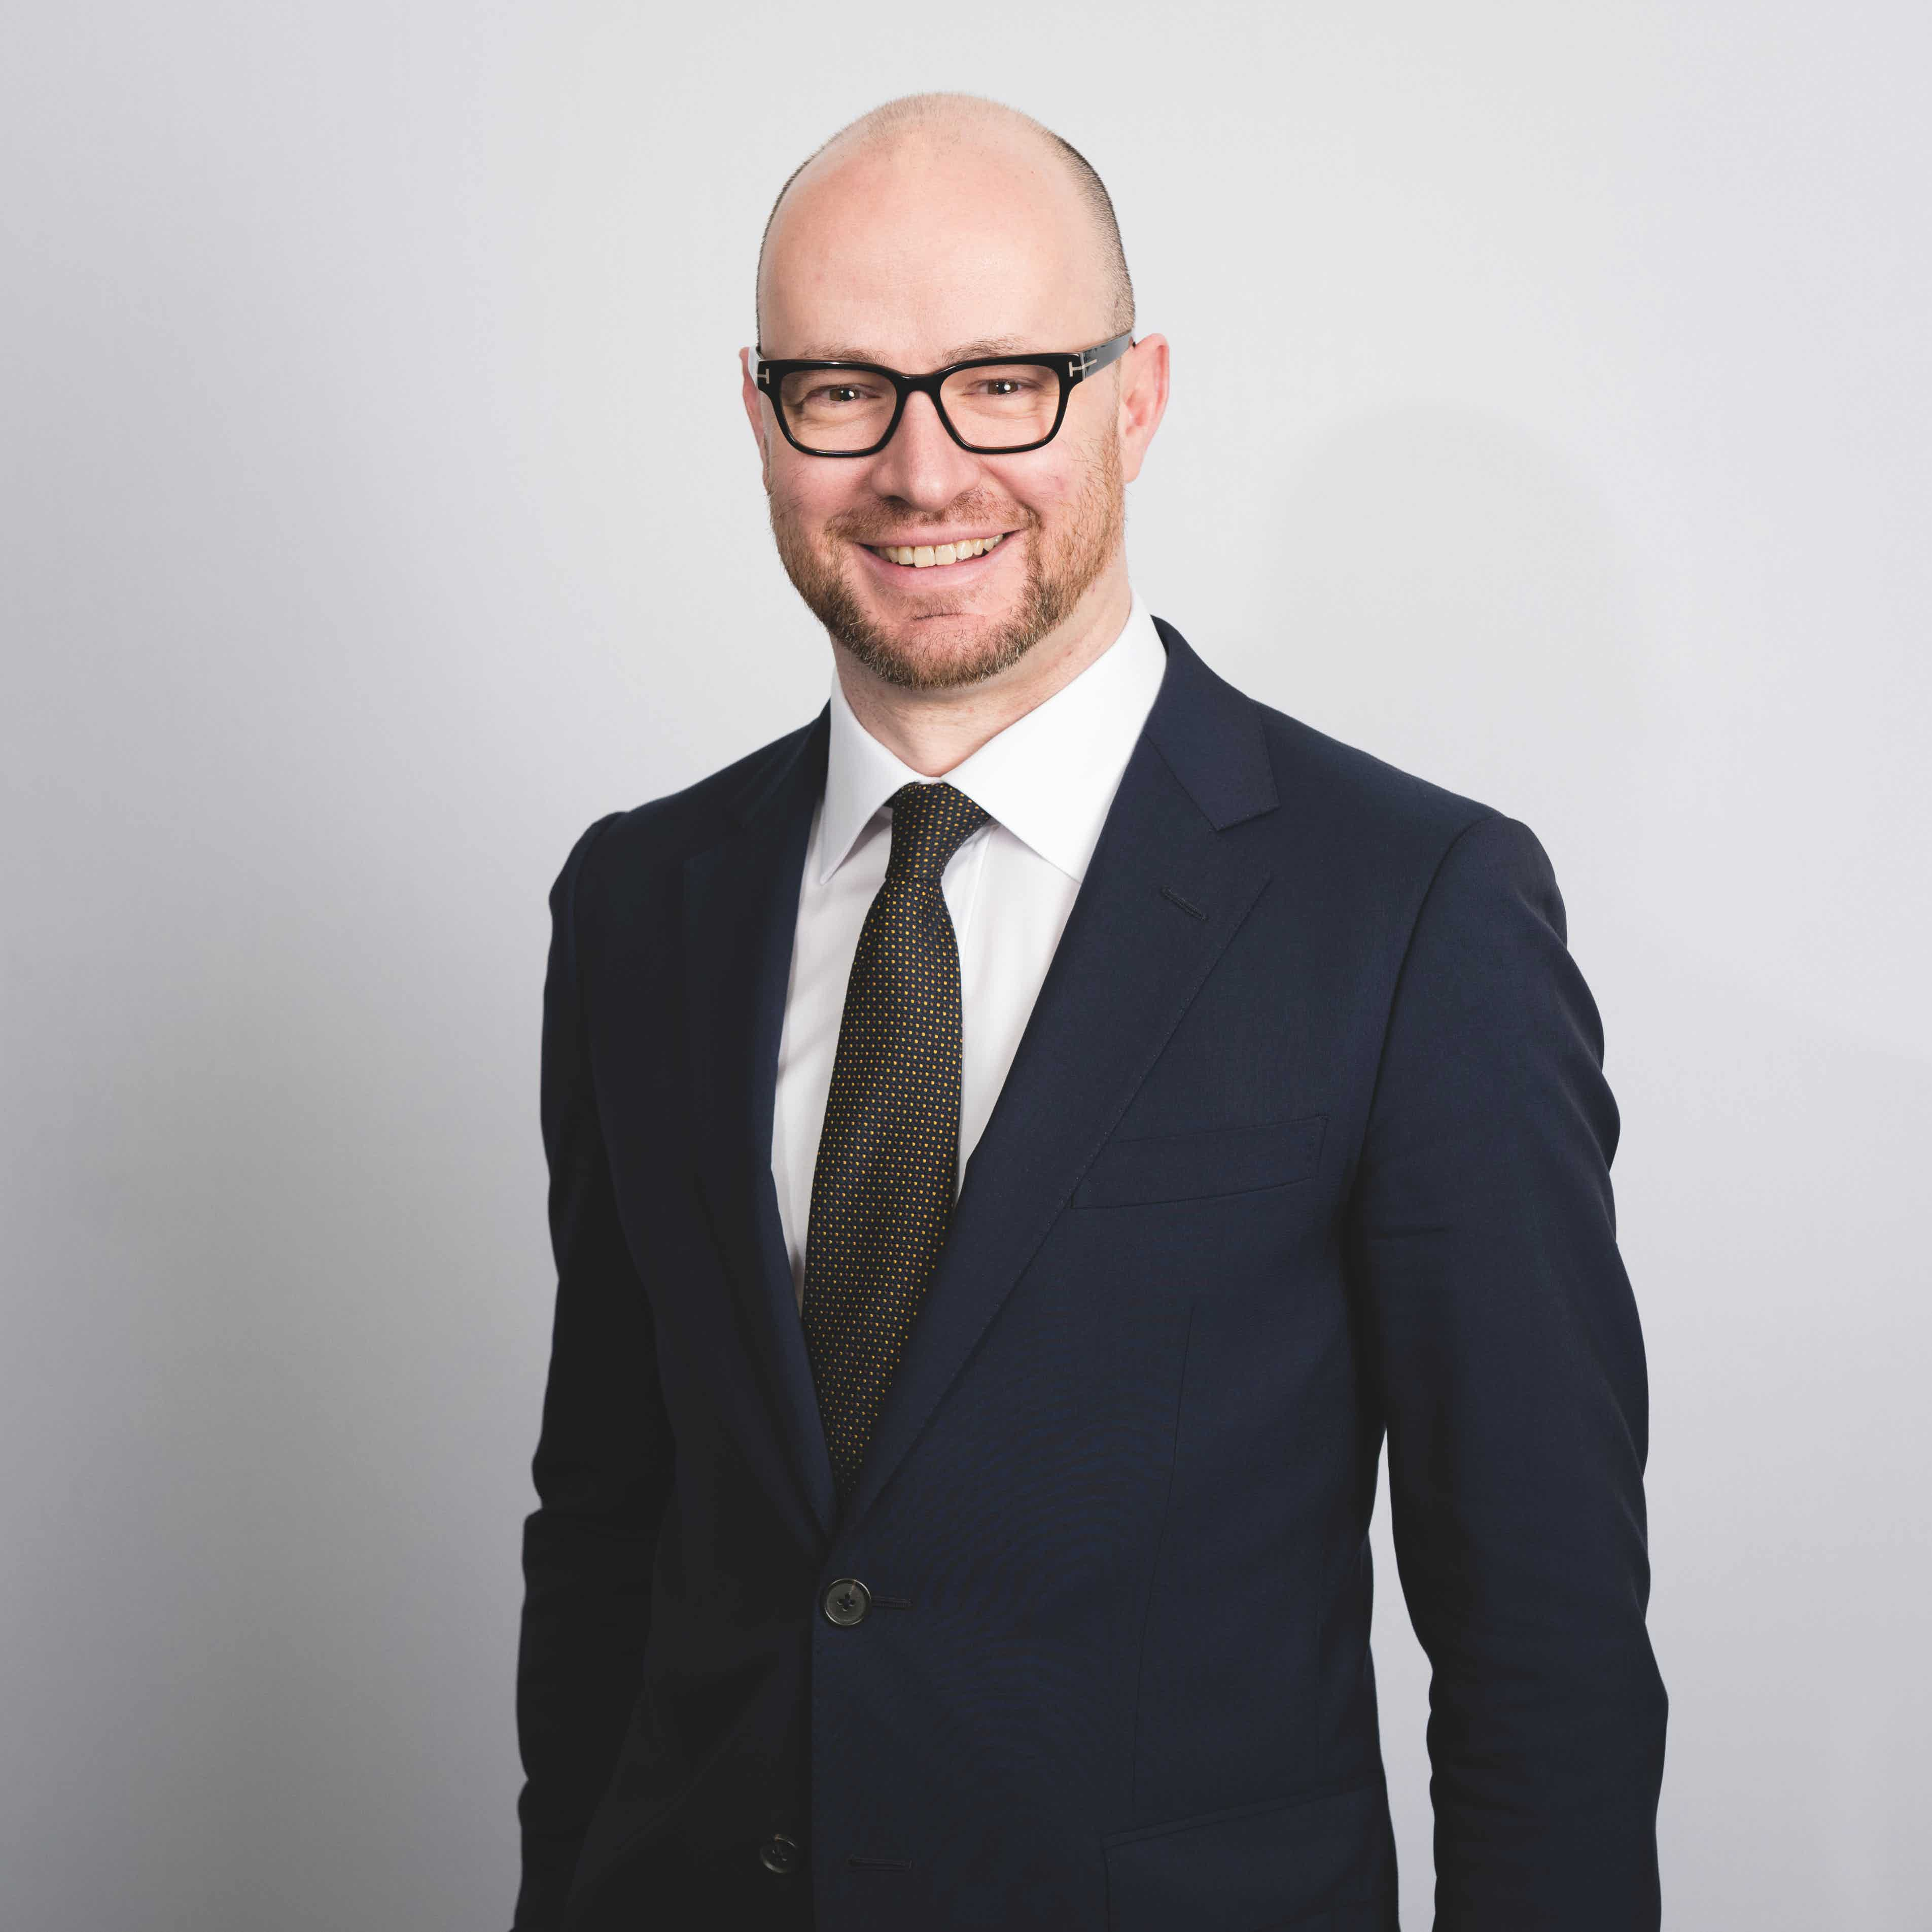 """The Lawyer """"Law firm litigation departments are thinking what they can do to build the practice – they're not quivering in fear"""" Neil Purslow, Therium"""